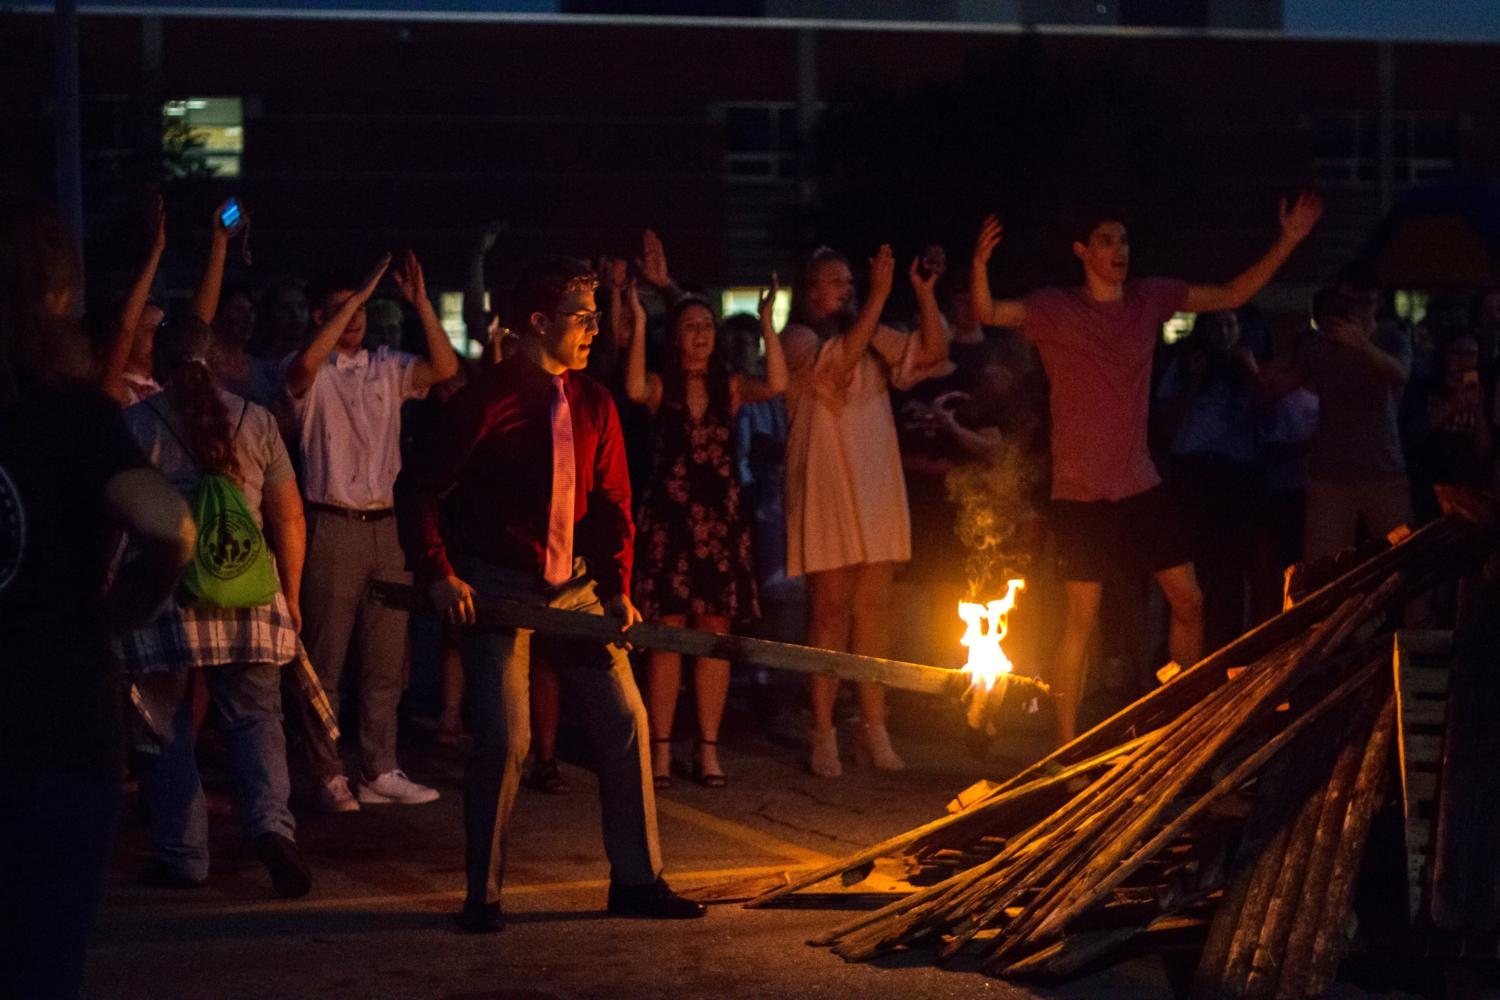 Homecoming candidate Teddy Carttar attempts to light the fire. Due to the wood being wet, the fire was unable to remain lit.